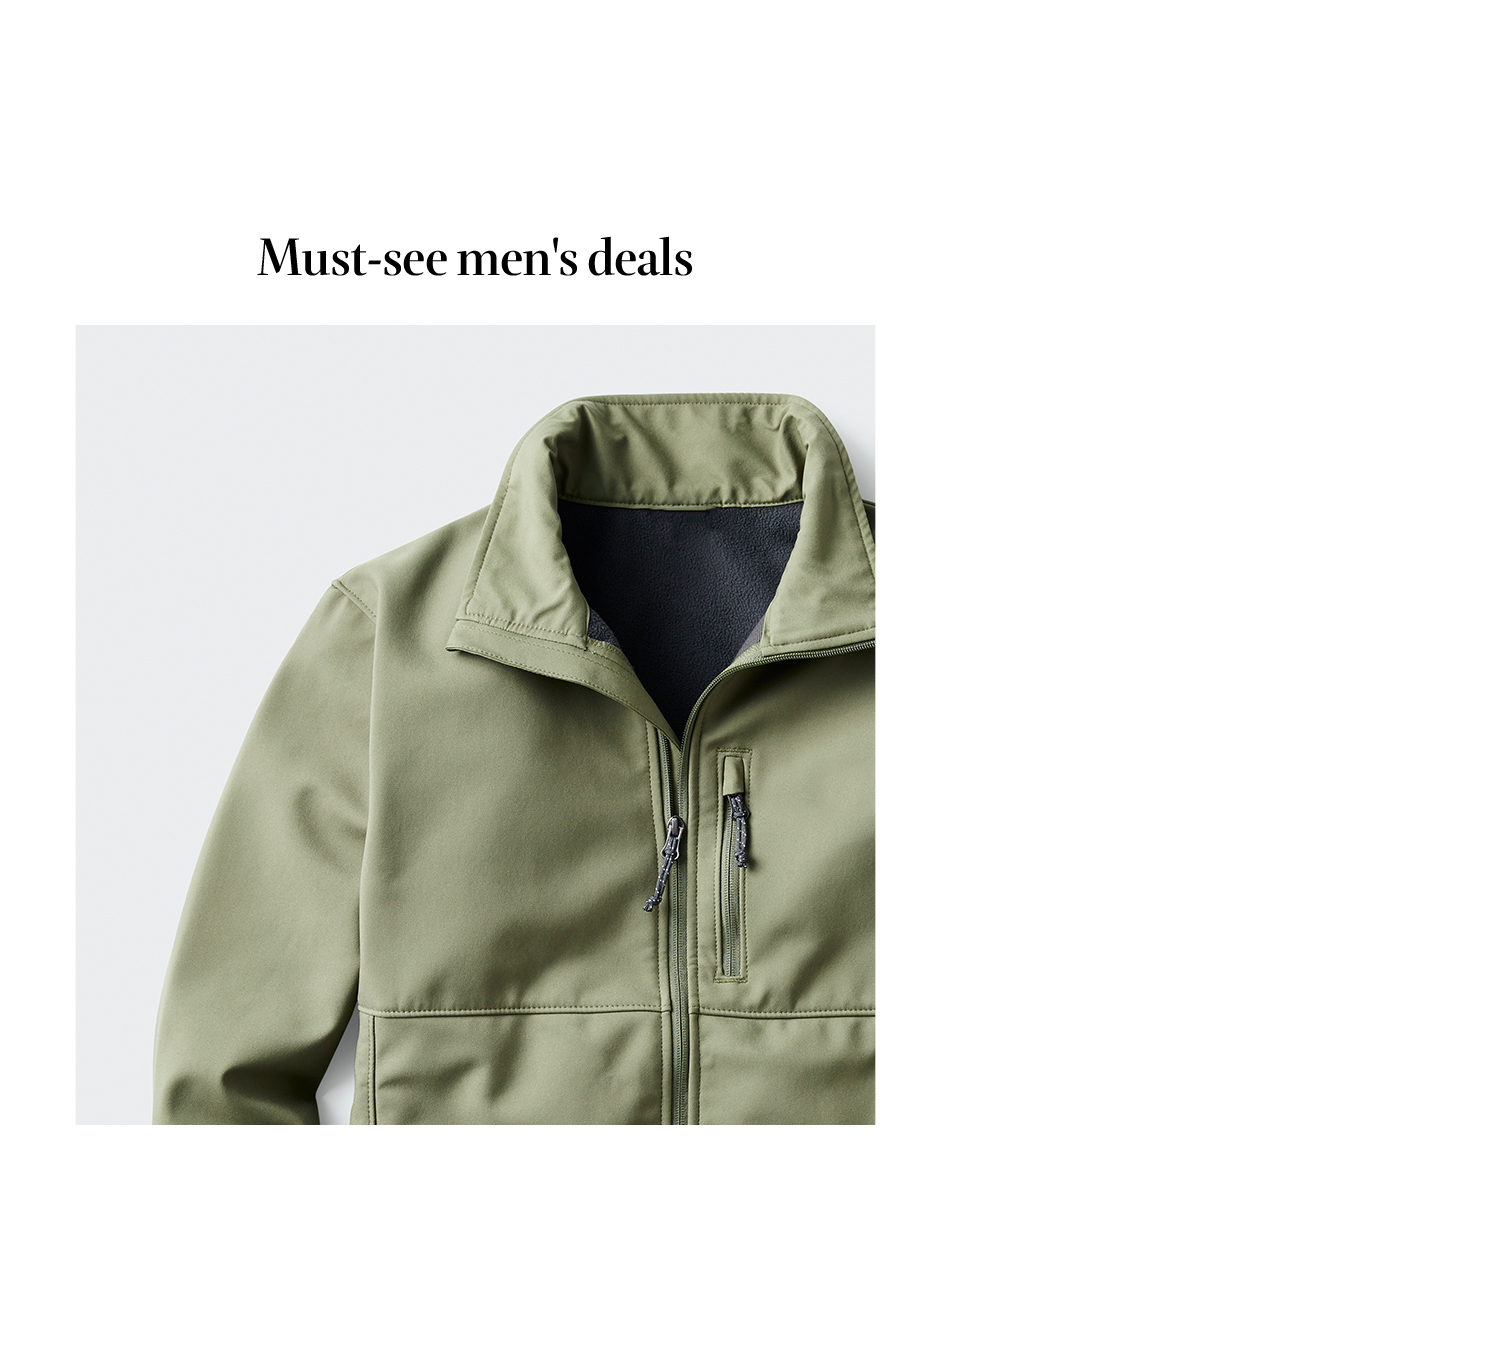 Must-see men's deals